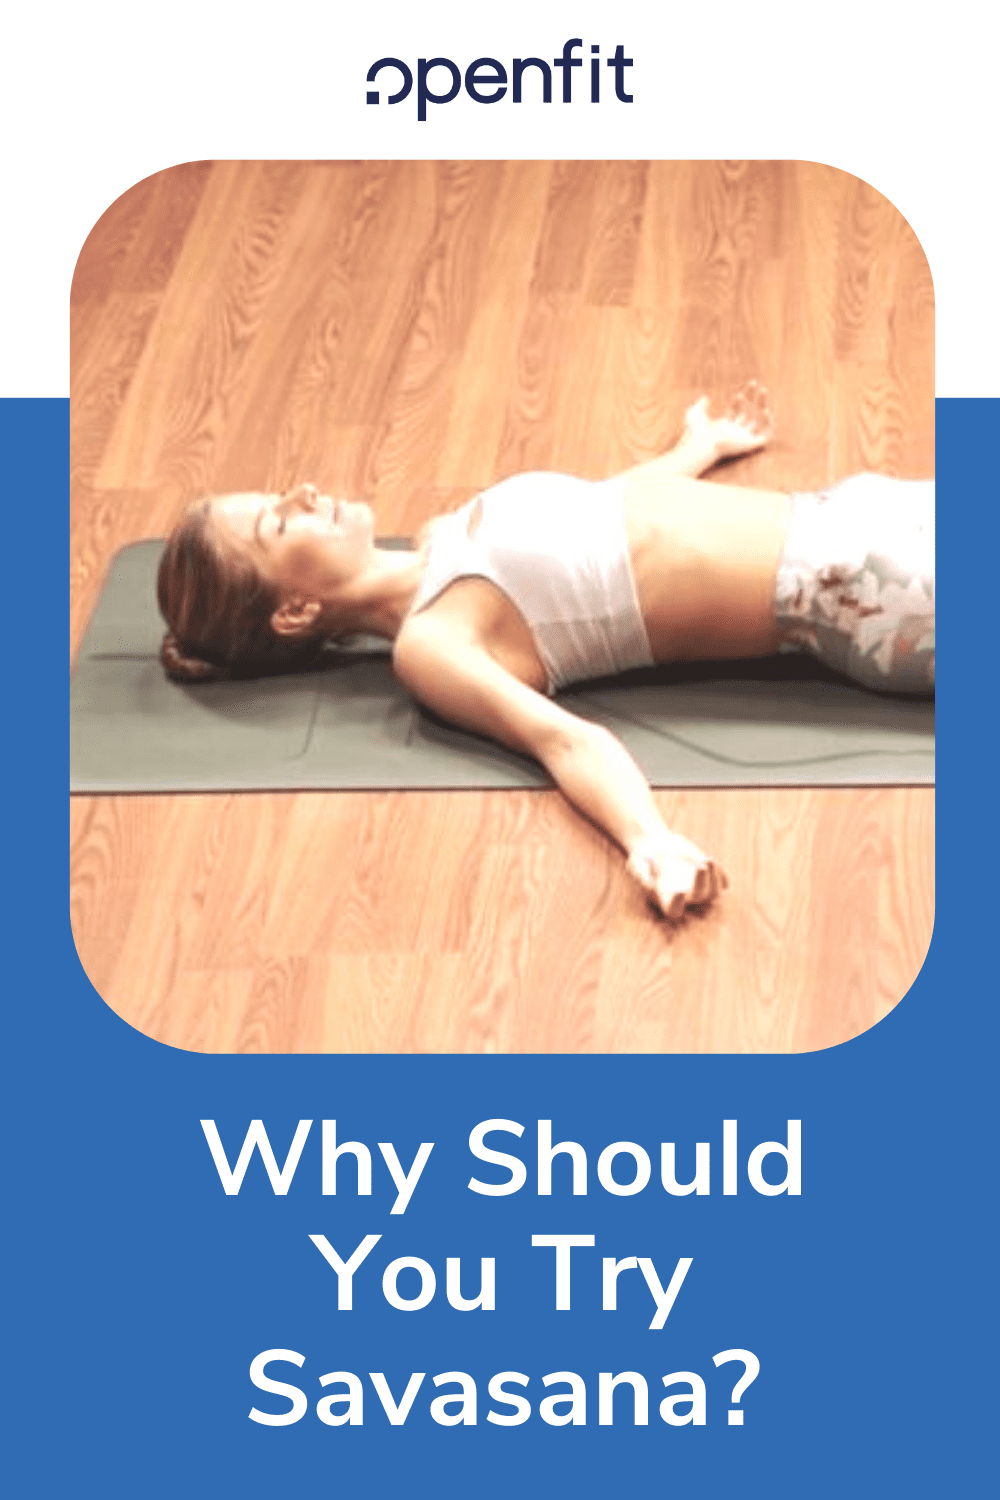 savasana - pin image